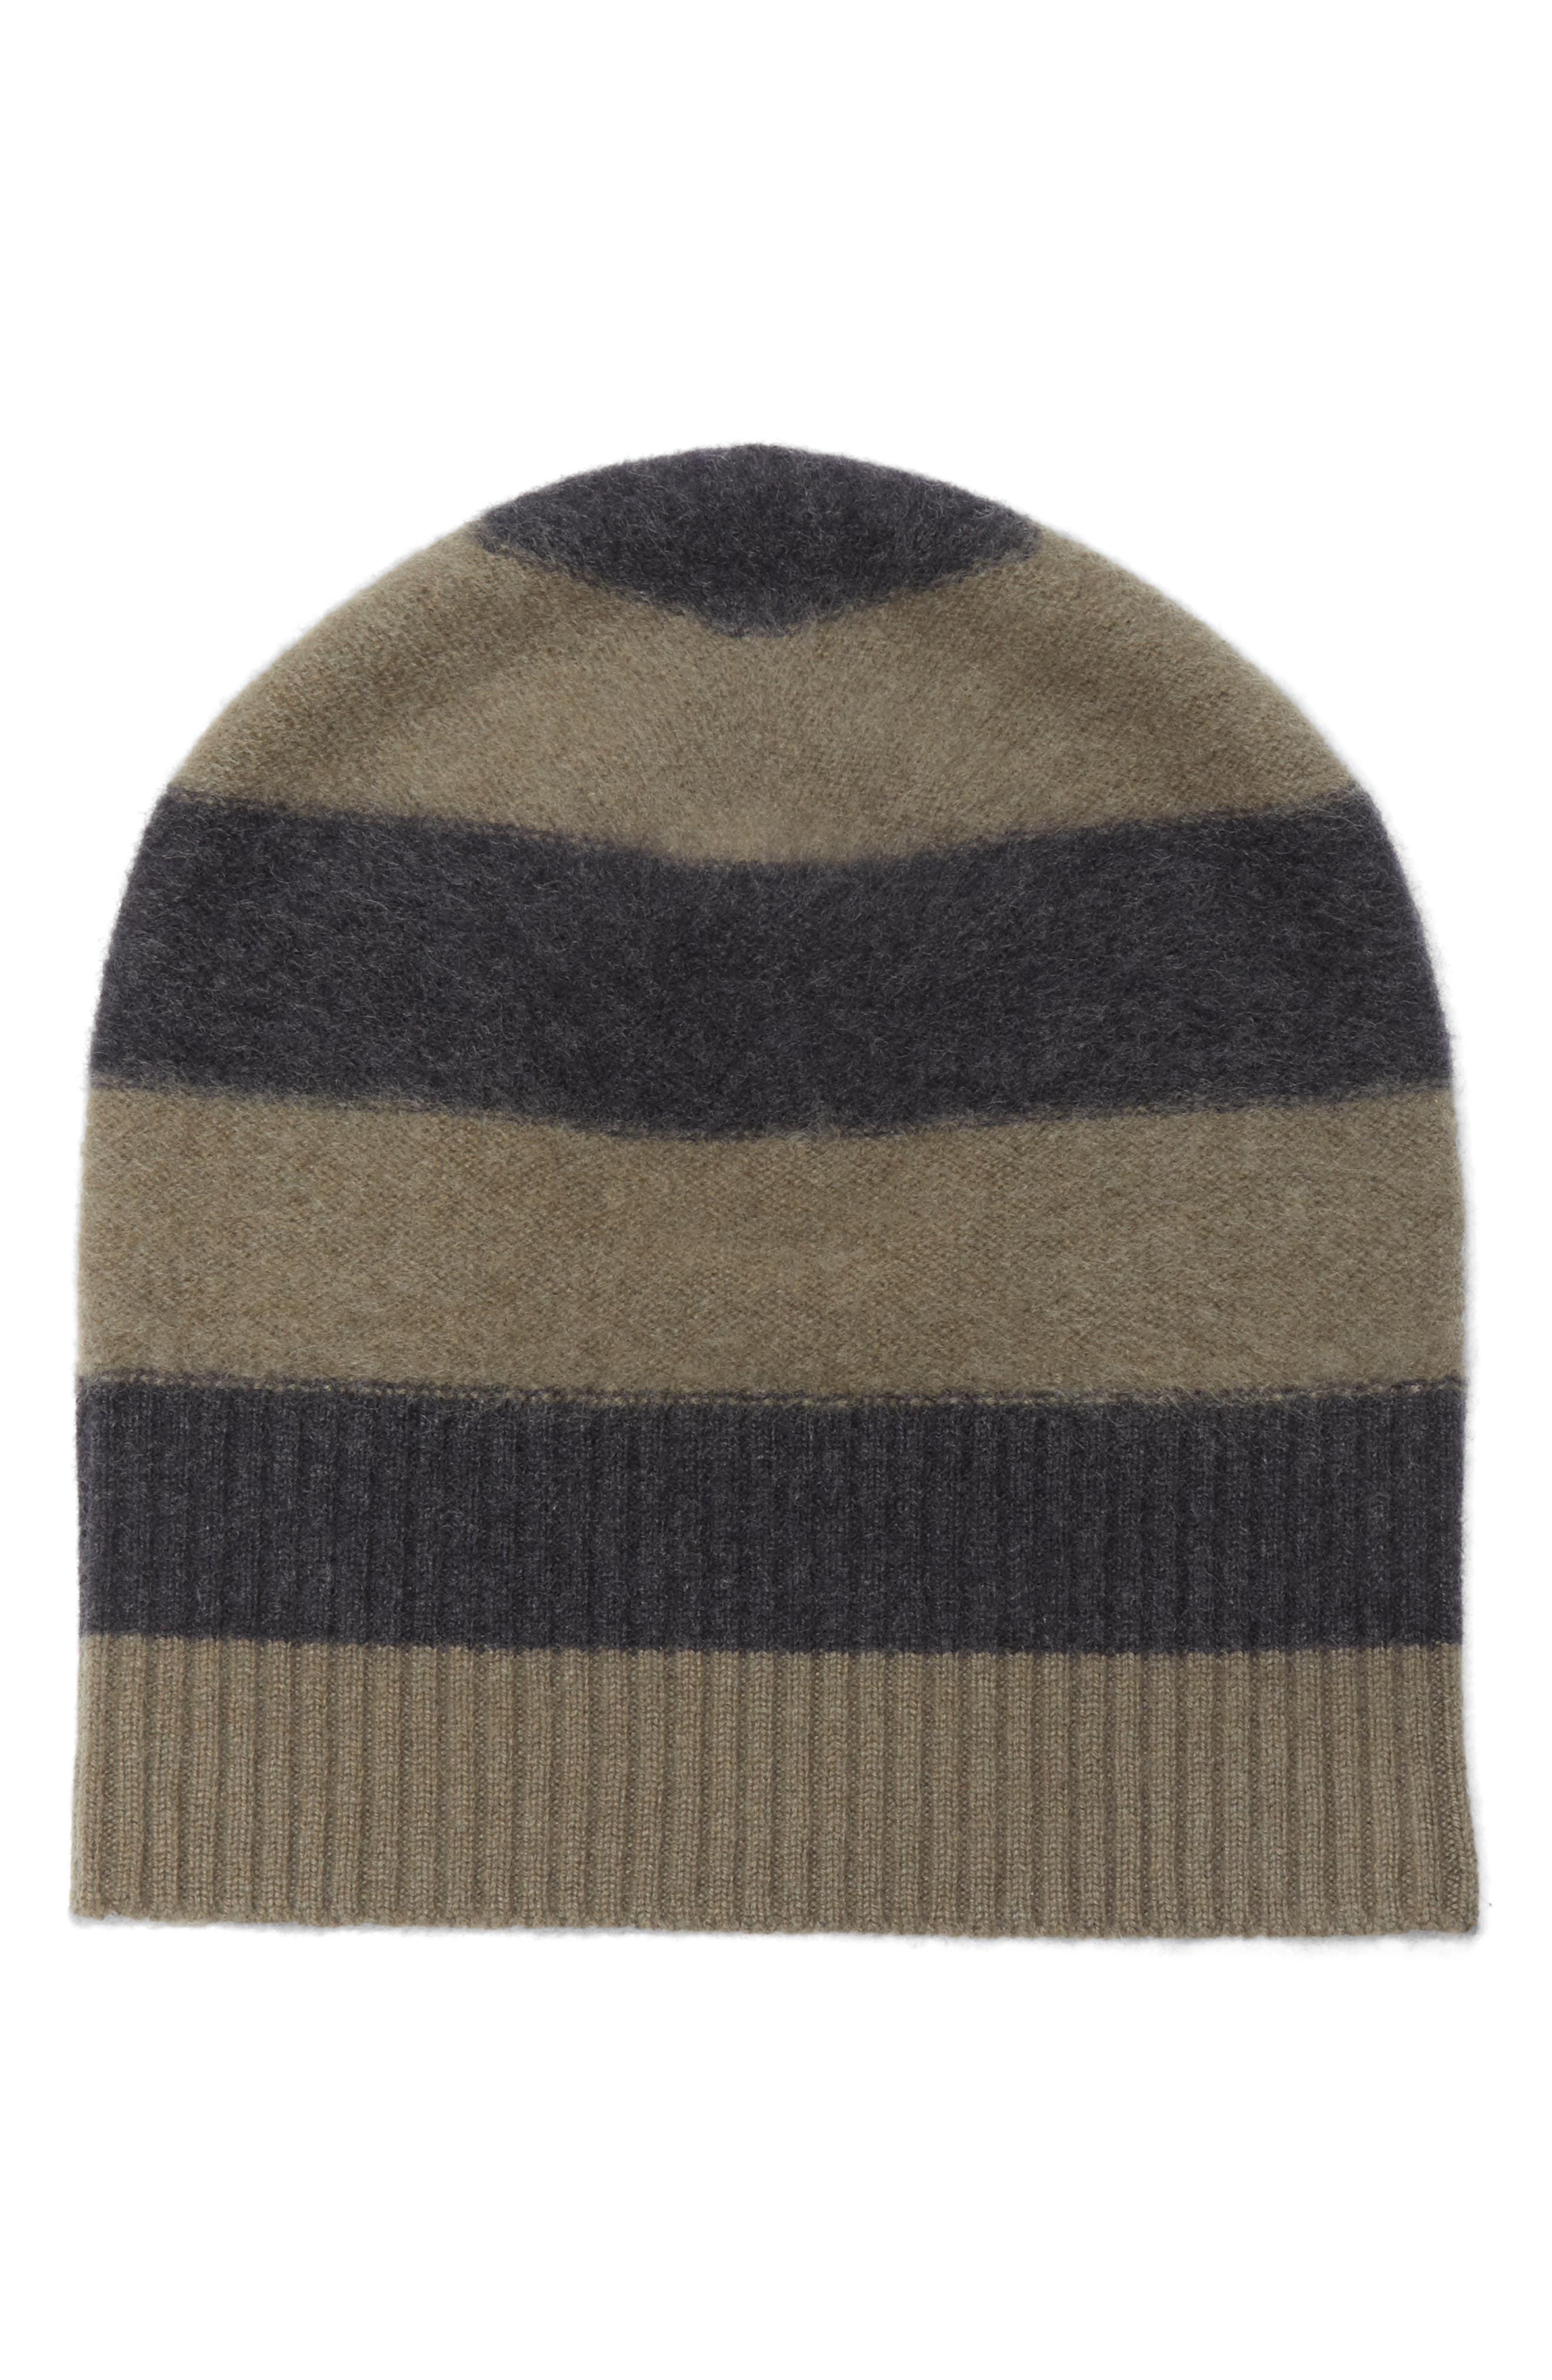 Stripe Cashmere Beanie,                         Main,                         color, Olivewood/ Heather Carbon